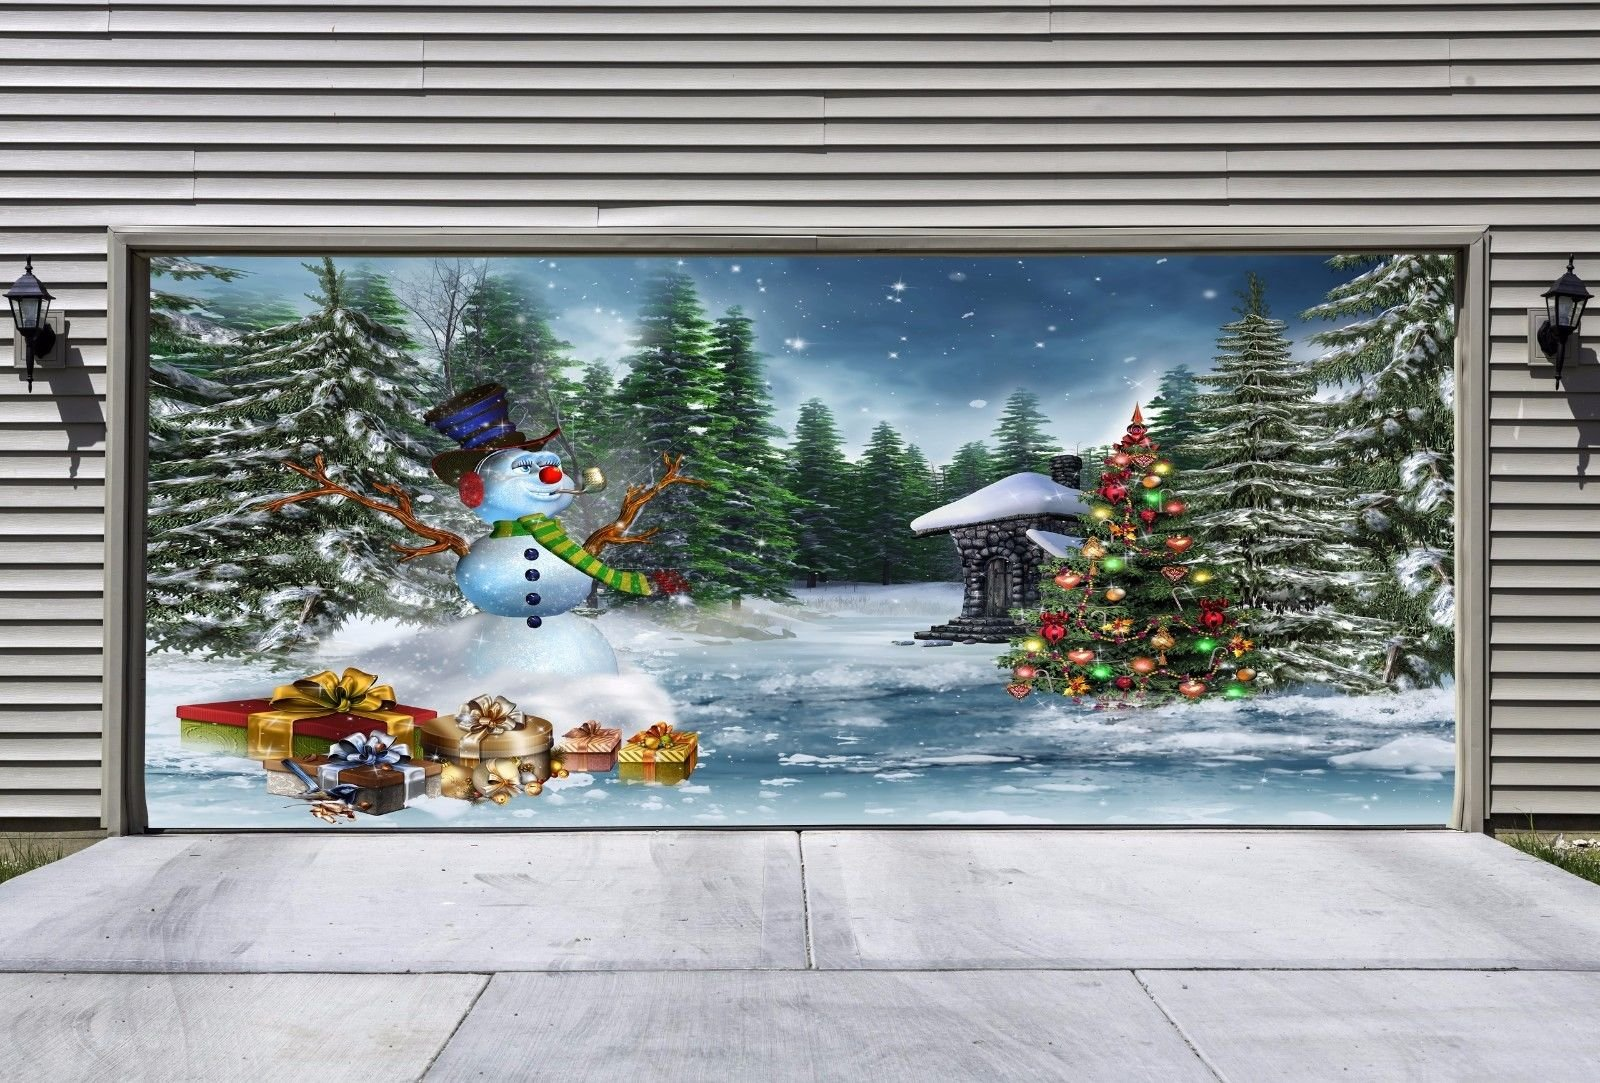 Christmas Garage Door UNIQUE Full Color Covers Banners Outdoor Holiday Decorations Billboard for 2 Car Garage Door Murals size 82x188 inches Christmas Decor DAV30